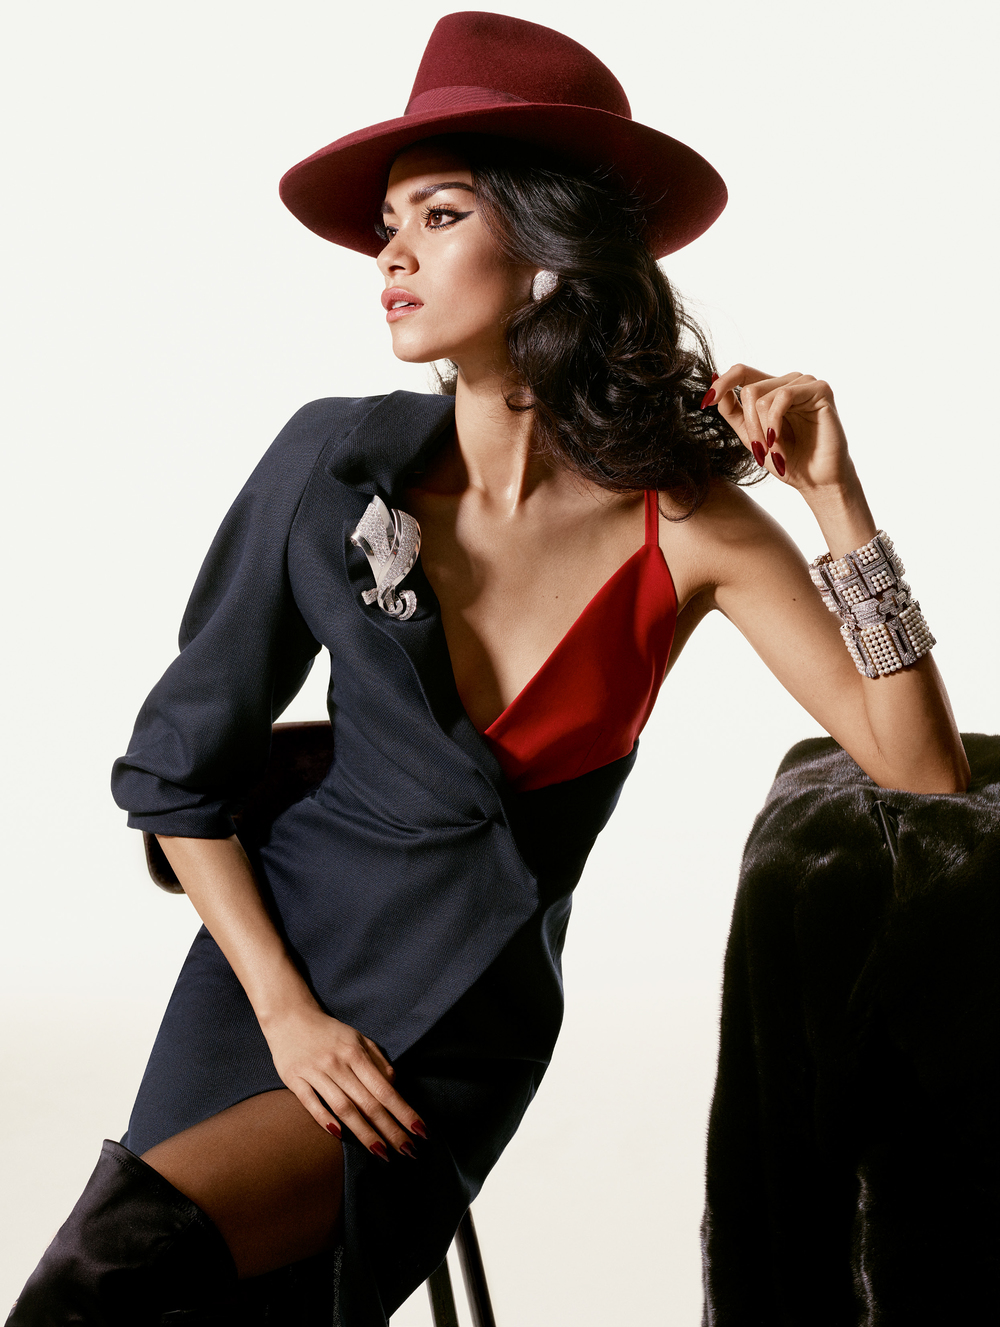 Vestido de  JACQUEMUS , sombrero de  JJ HAT CENTER , aretes, brazaletes y broche de  ELLA GEM , botas de  TOM FORD  para  YVES SAINT LAURENT  de Albright Fashion Library